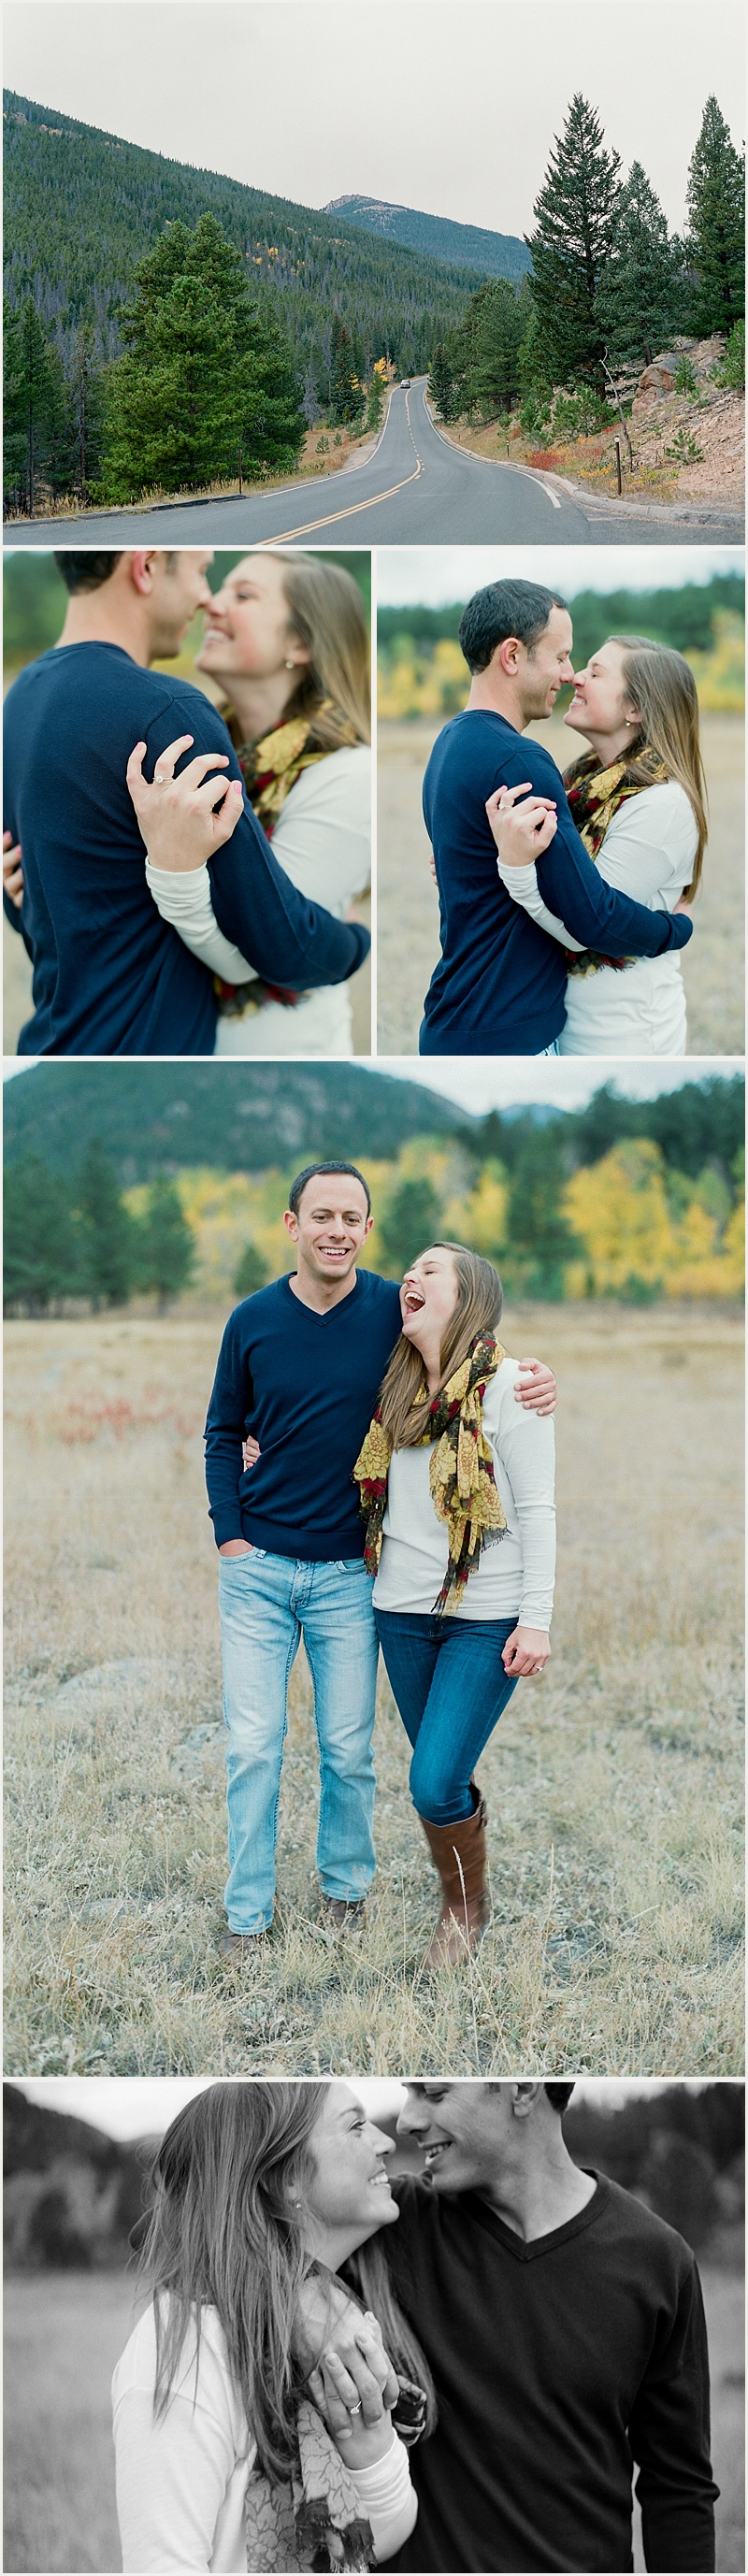 LaurenJonasPhotography-kristen-and-mike-colorado-engagement-photographer1002.jpg